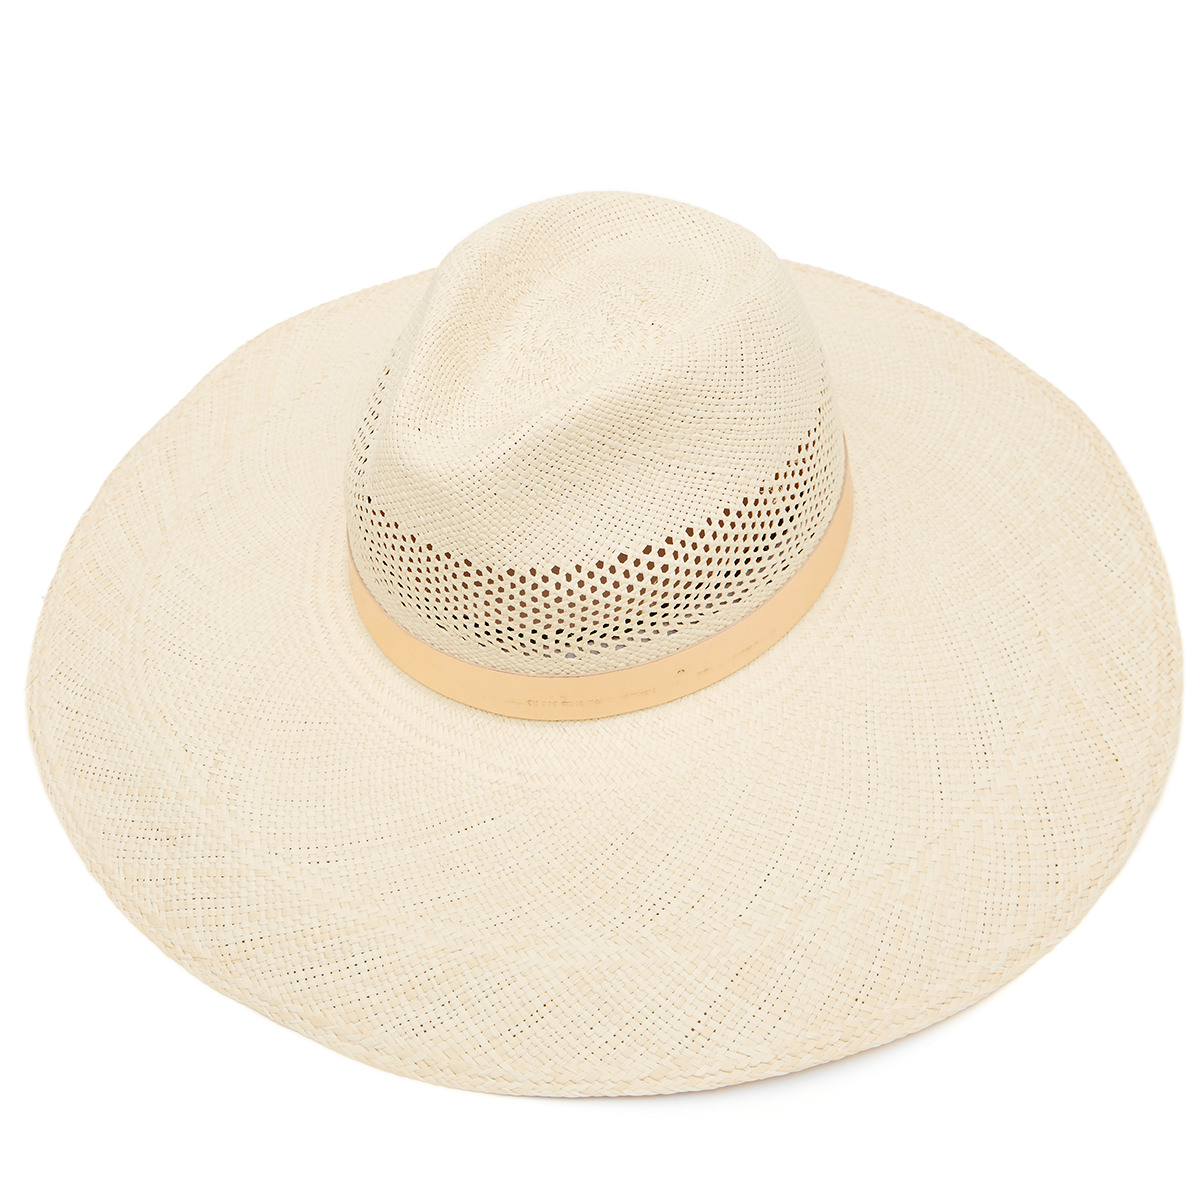 Freya Wide Brim Perforated Panama Hat with Rose Gold Leather - Stone in 56